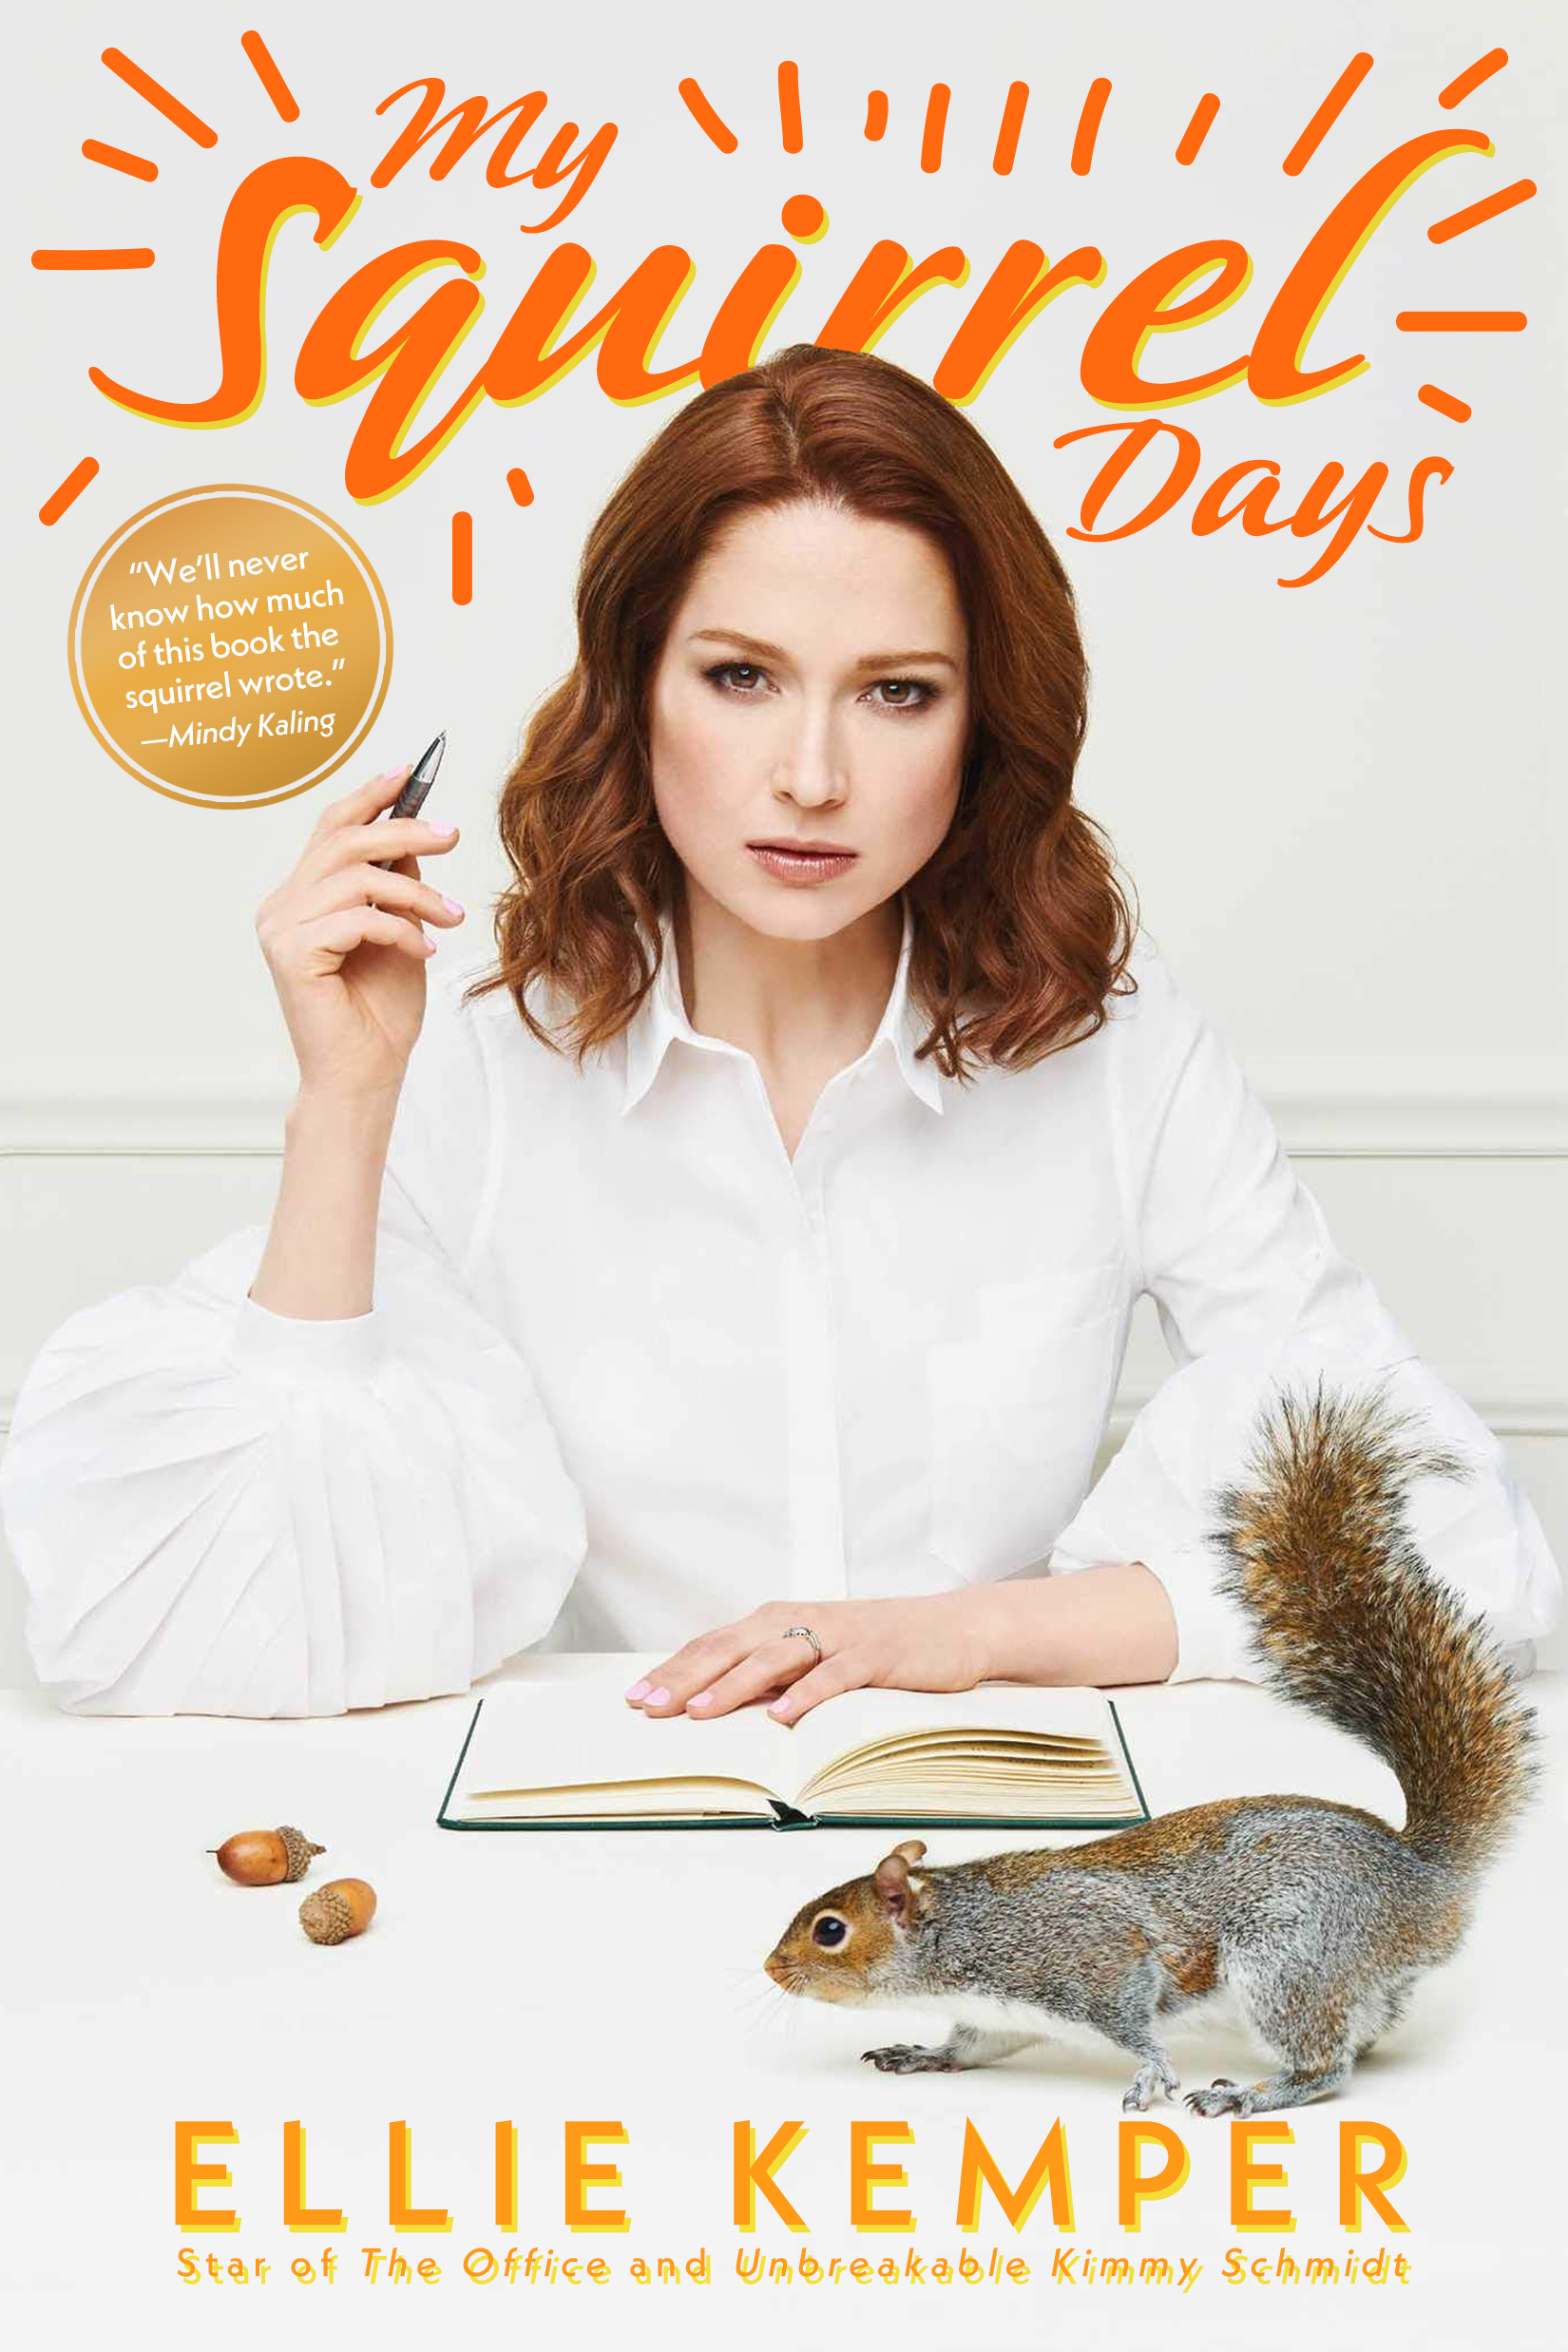 My Squirrel Days by Ellie Kemper Designed by Ben Mautner for One Hour Covers